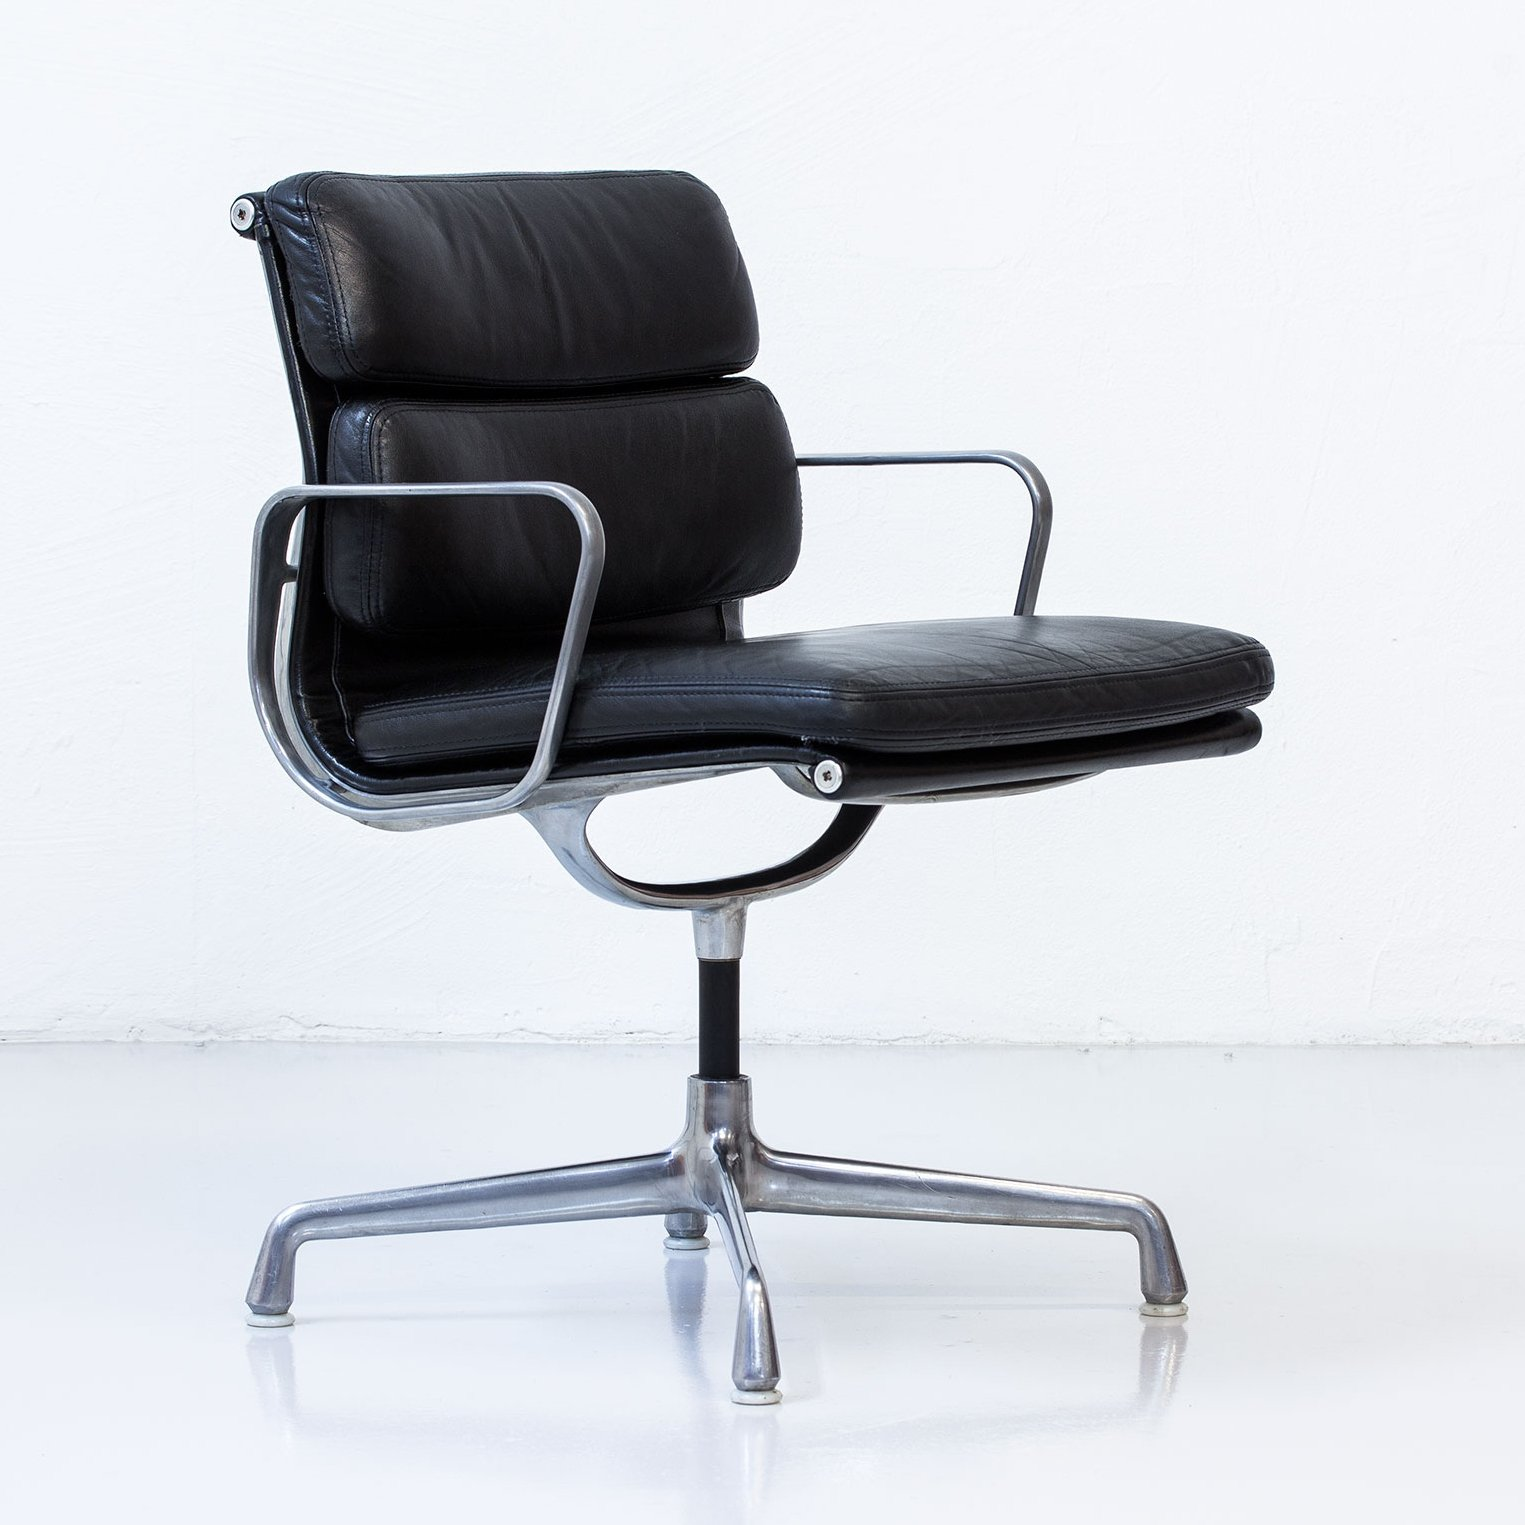 Original eames lounge chair - Soft Pad Office Chair By Charles Amp Ray Eames For Herman